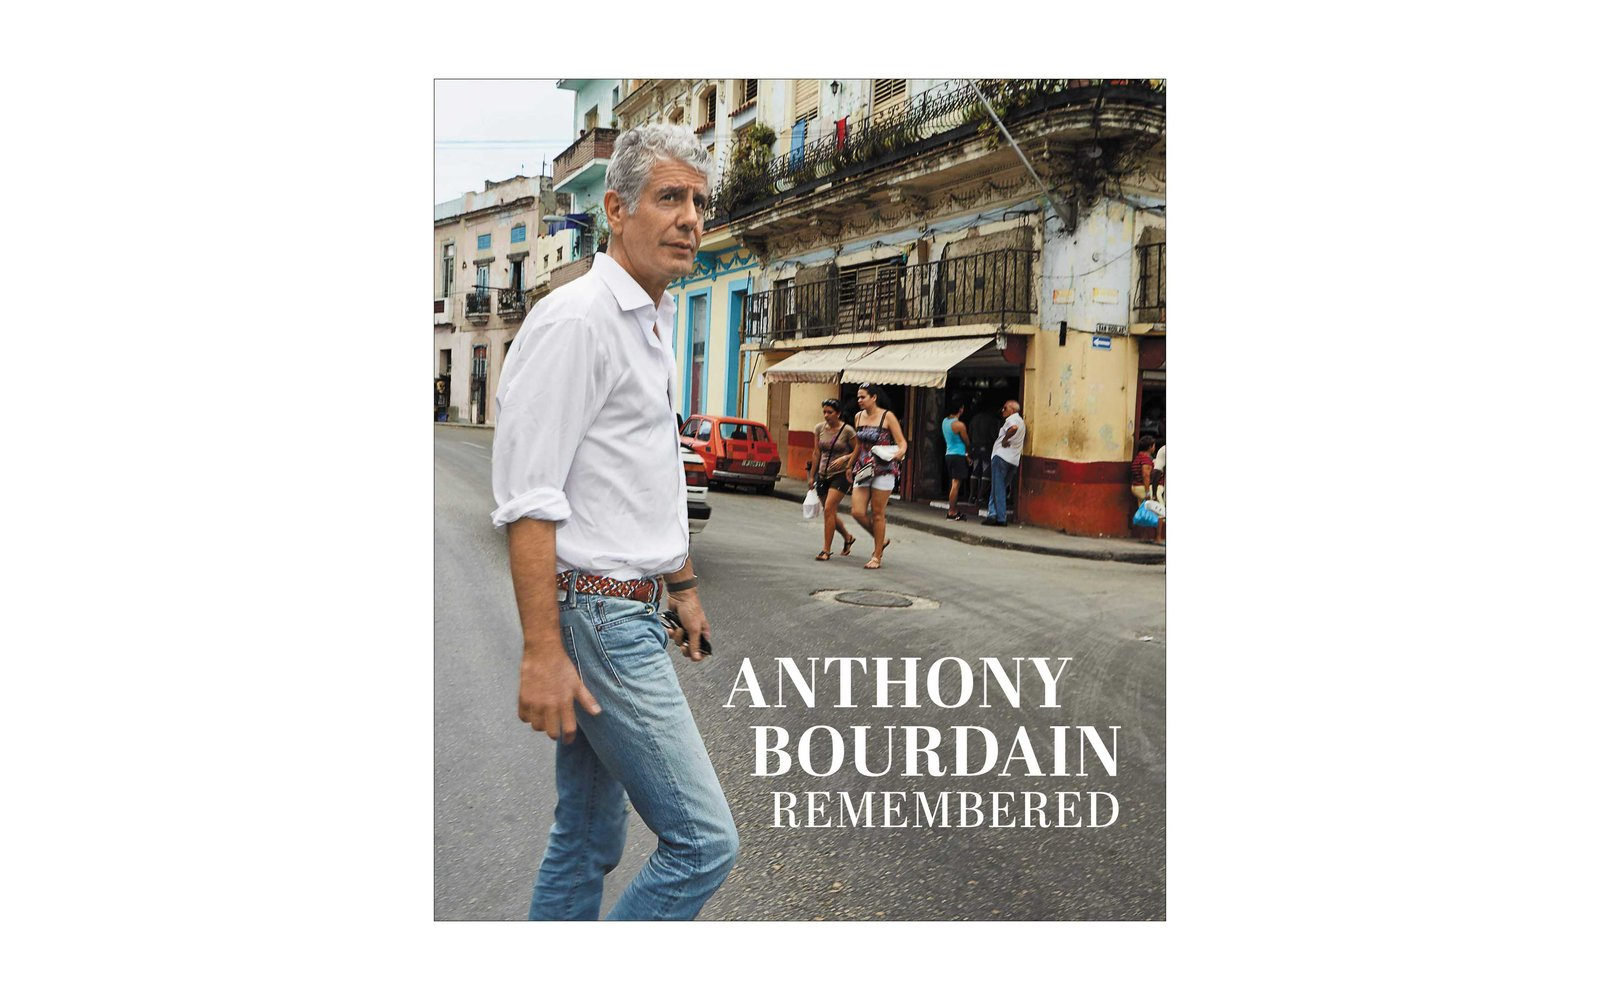 Anthony Bourdain Remembered book